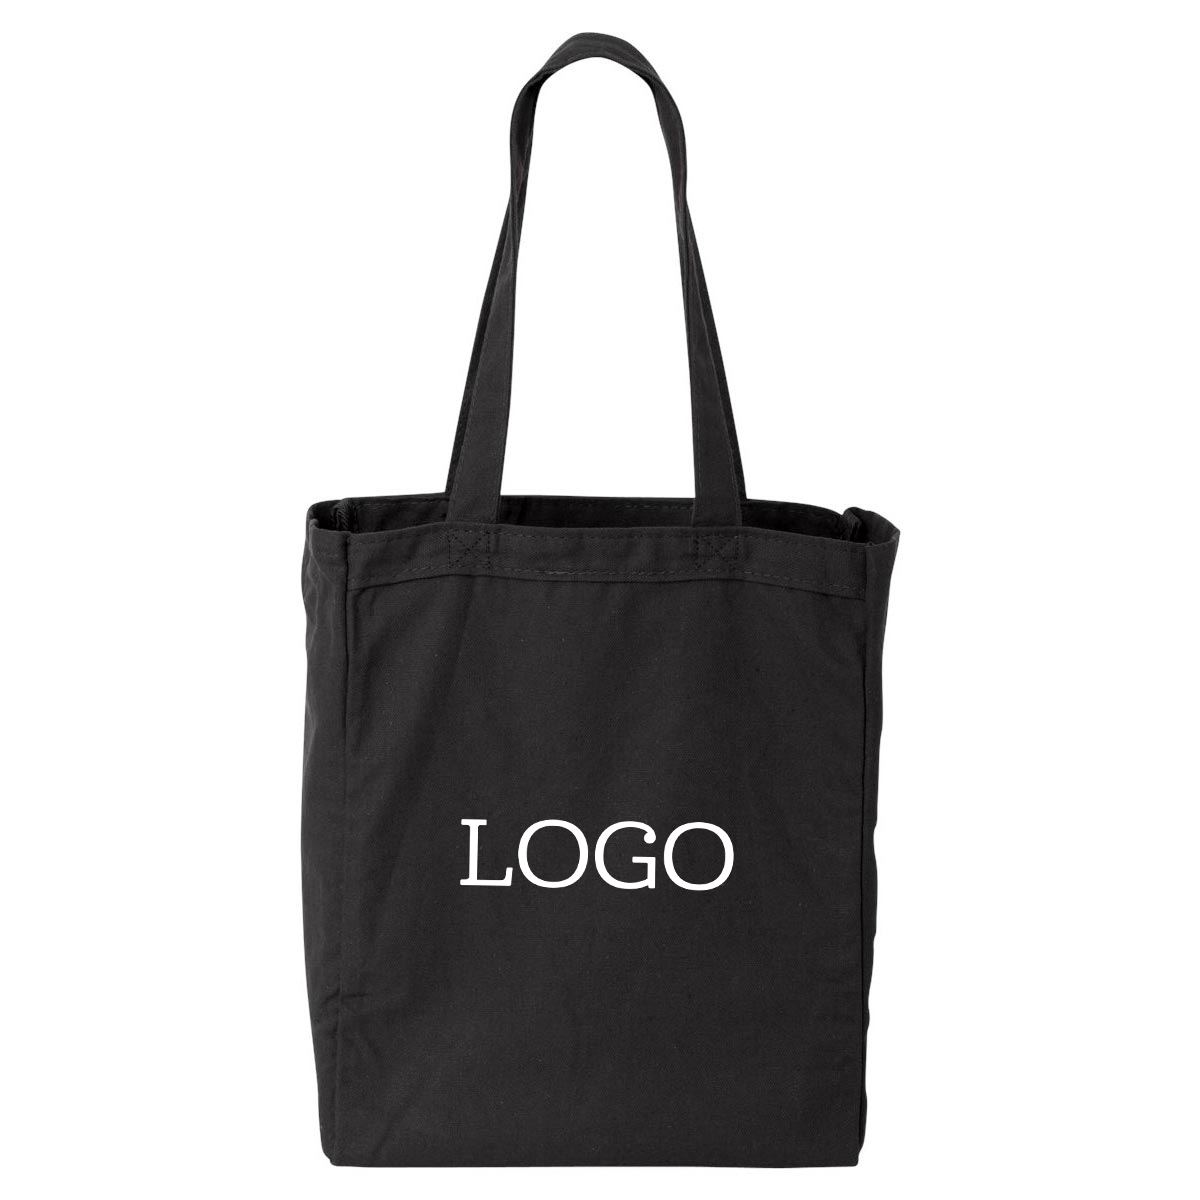 250755 theo tote one color one location imprint